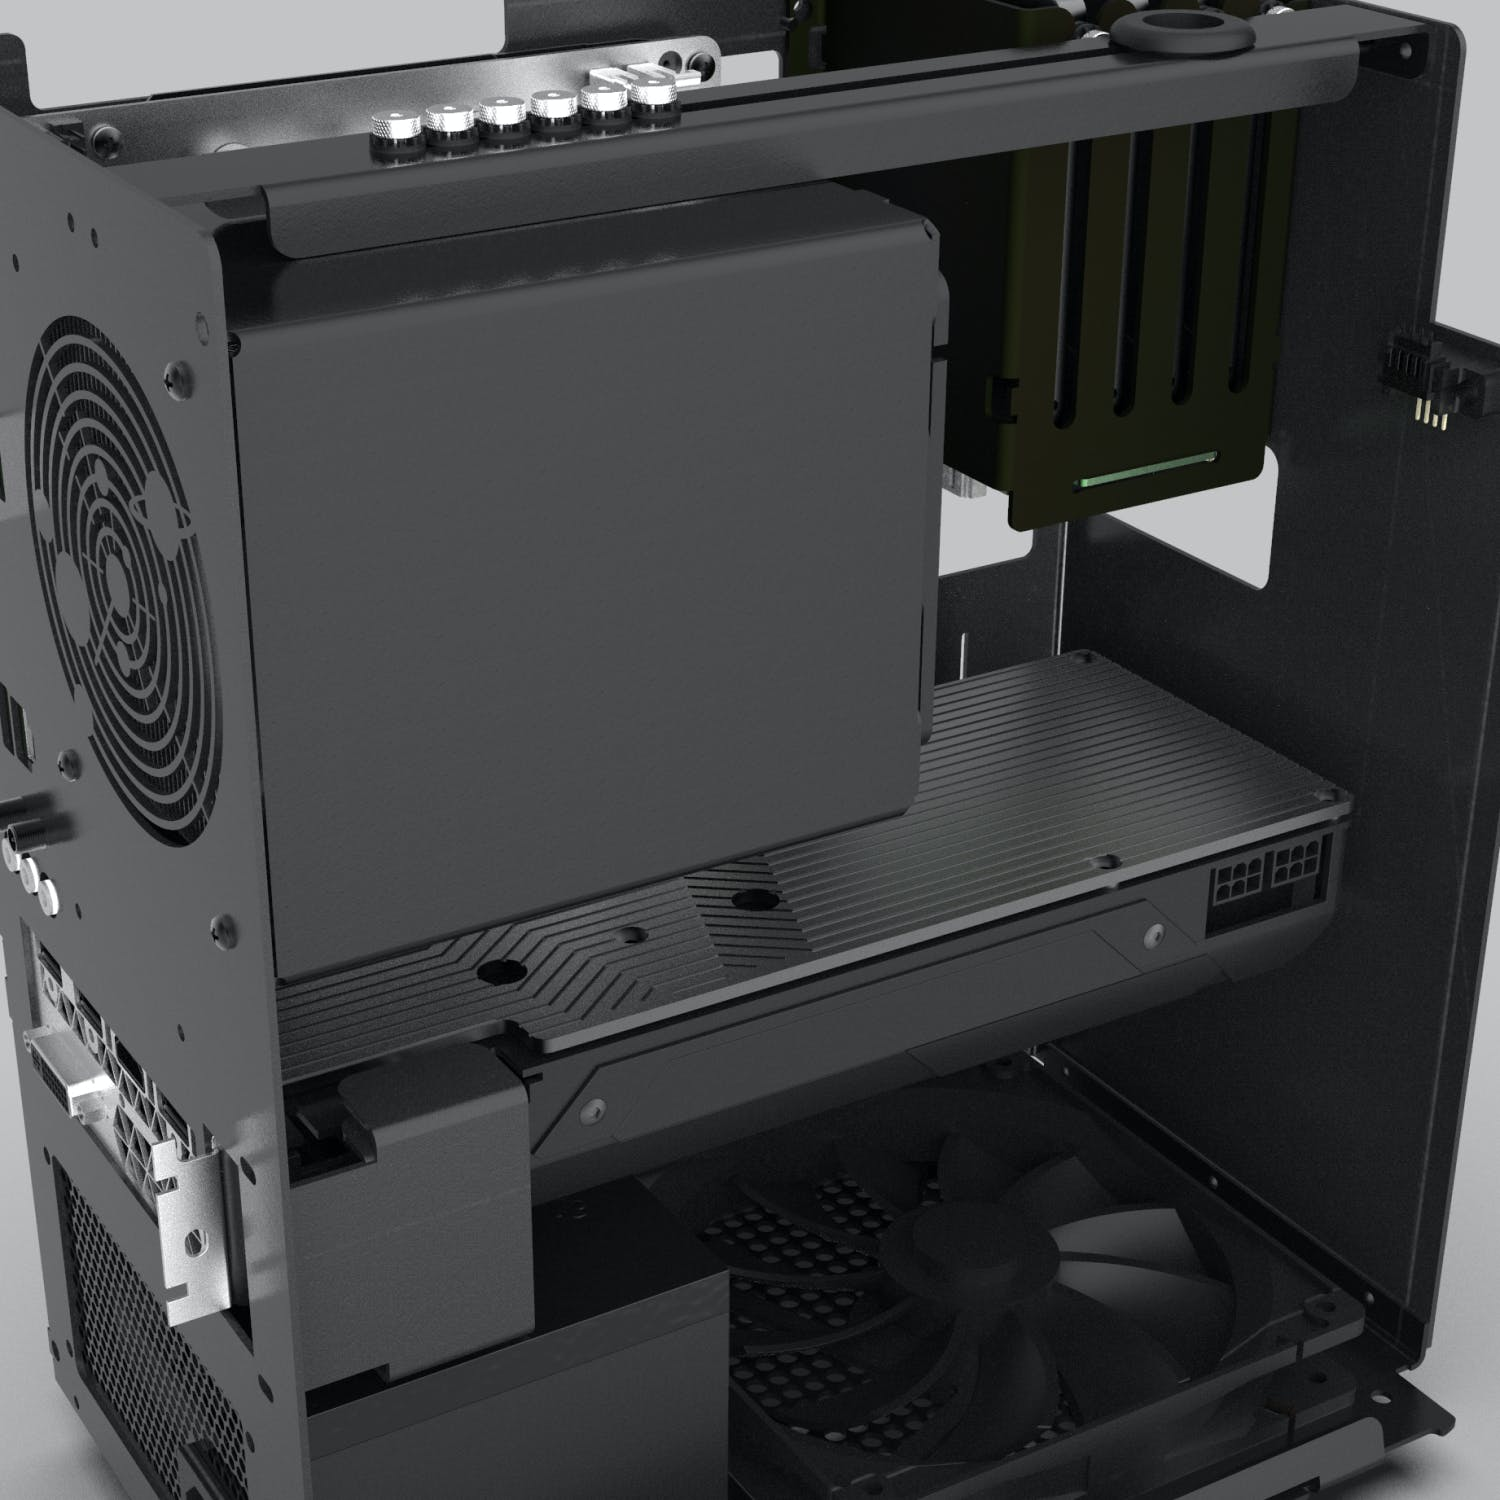 Close view of the machine interior with GPU and intake fan.